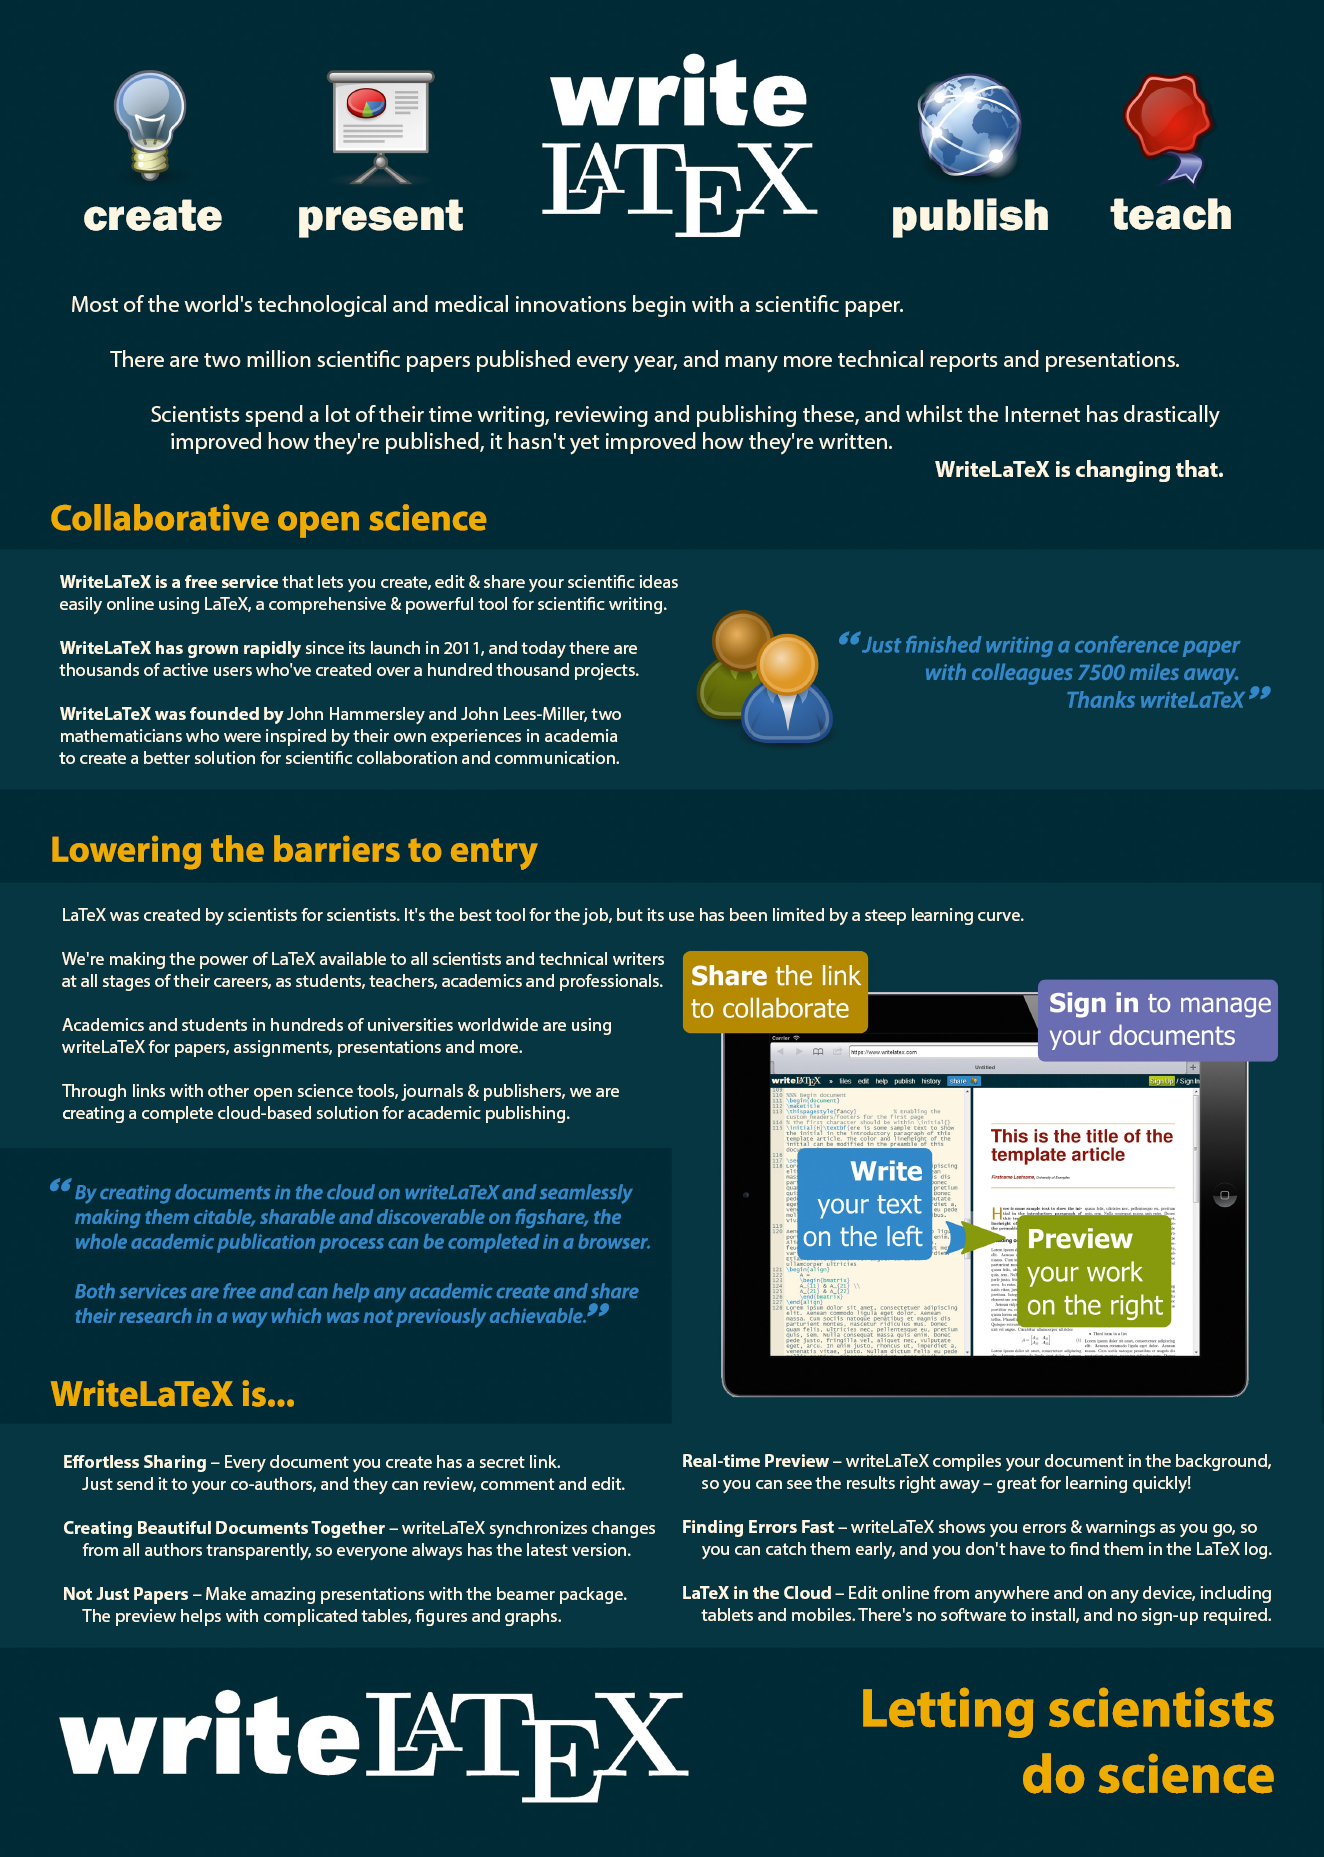 WriteLaTeX Collaborative Open Science Poster